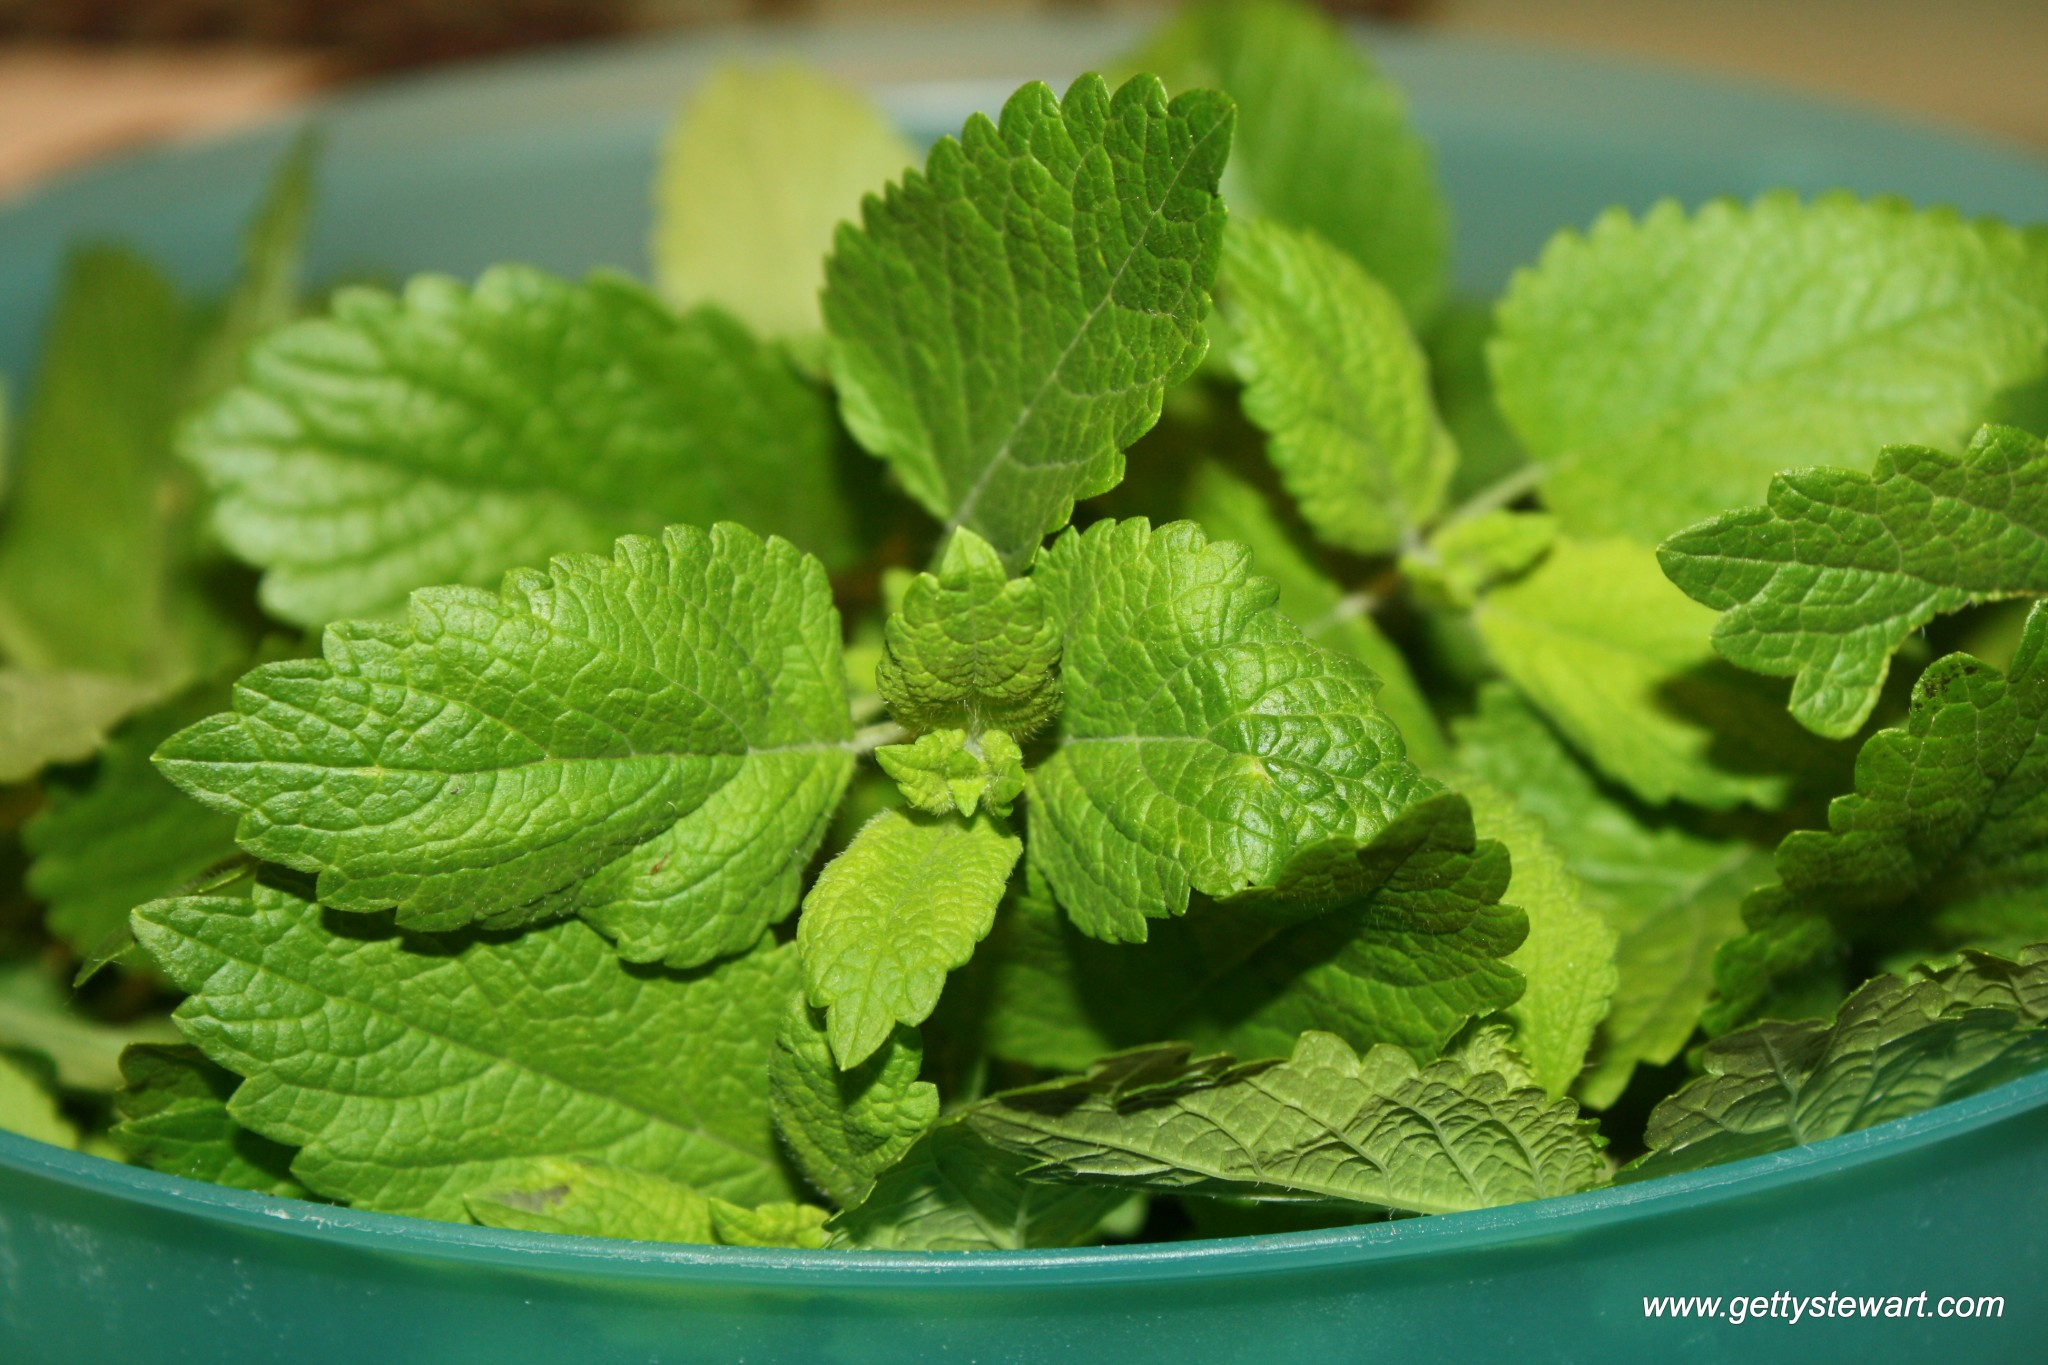 How to Harvest and Dry Lemon and Lime Balm - Getty Stewart